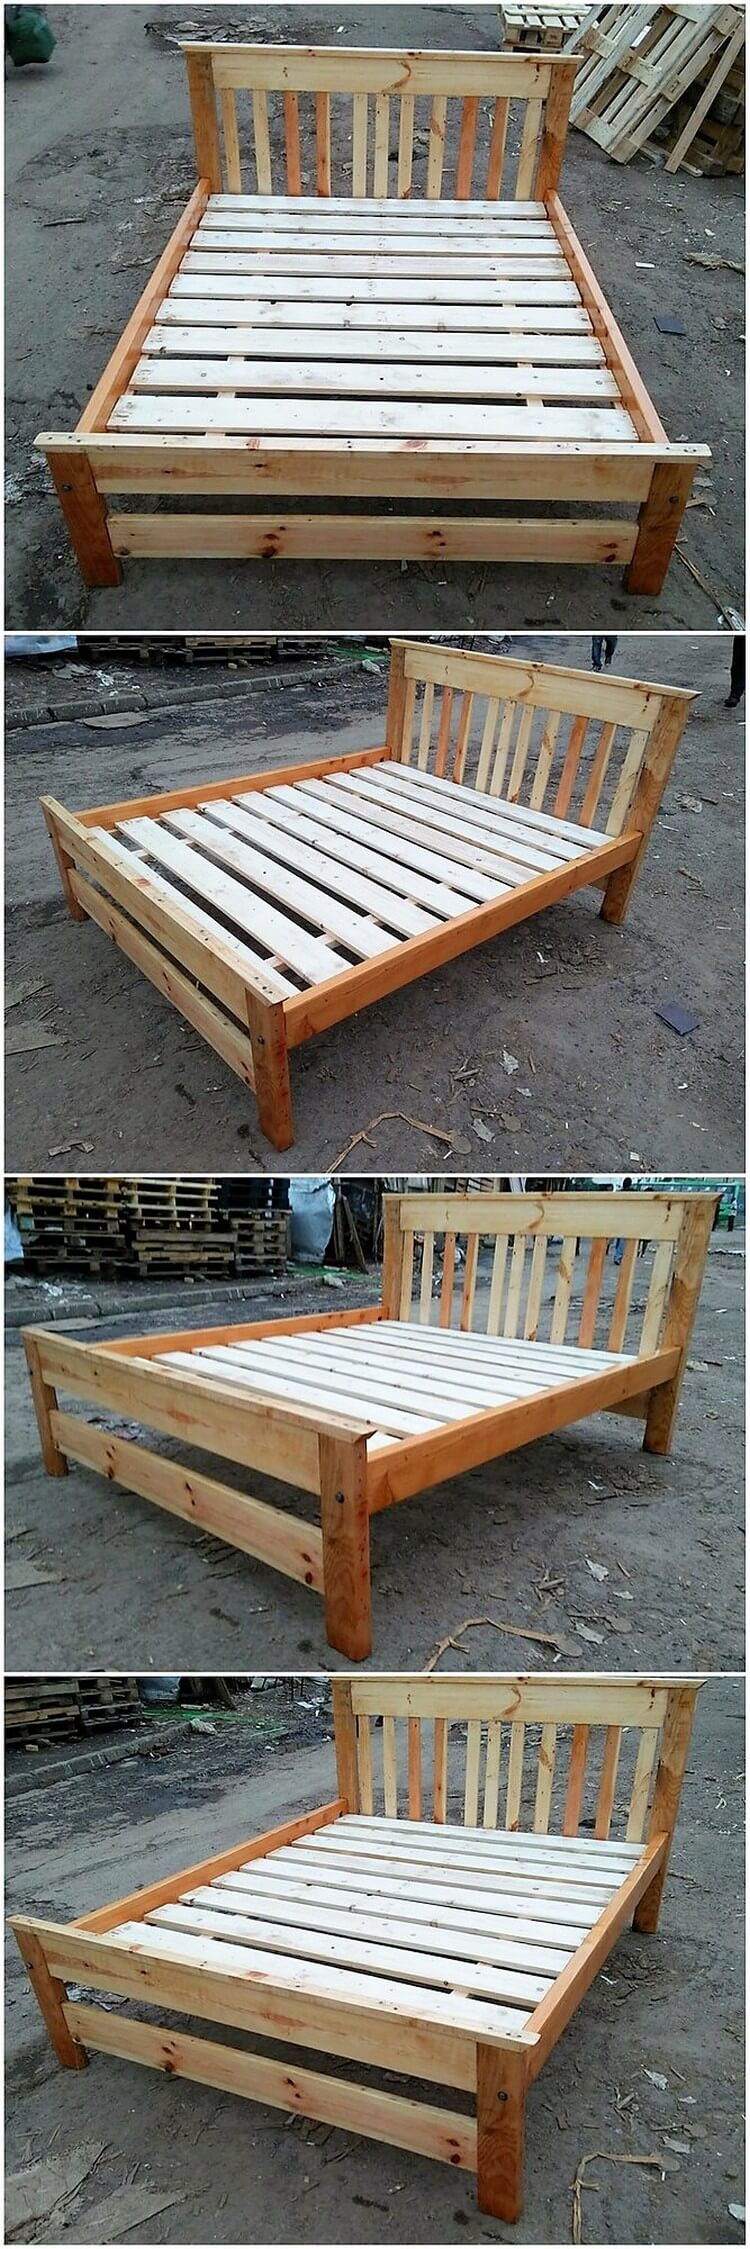 cool pallet beds ideas